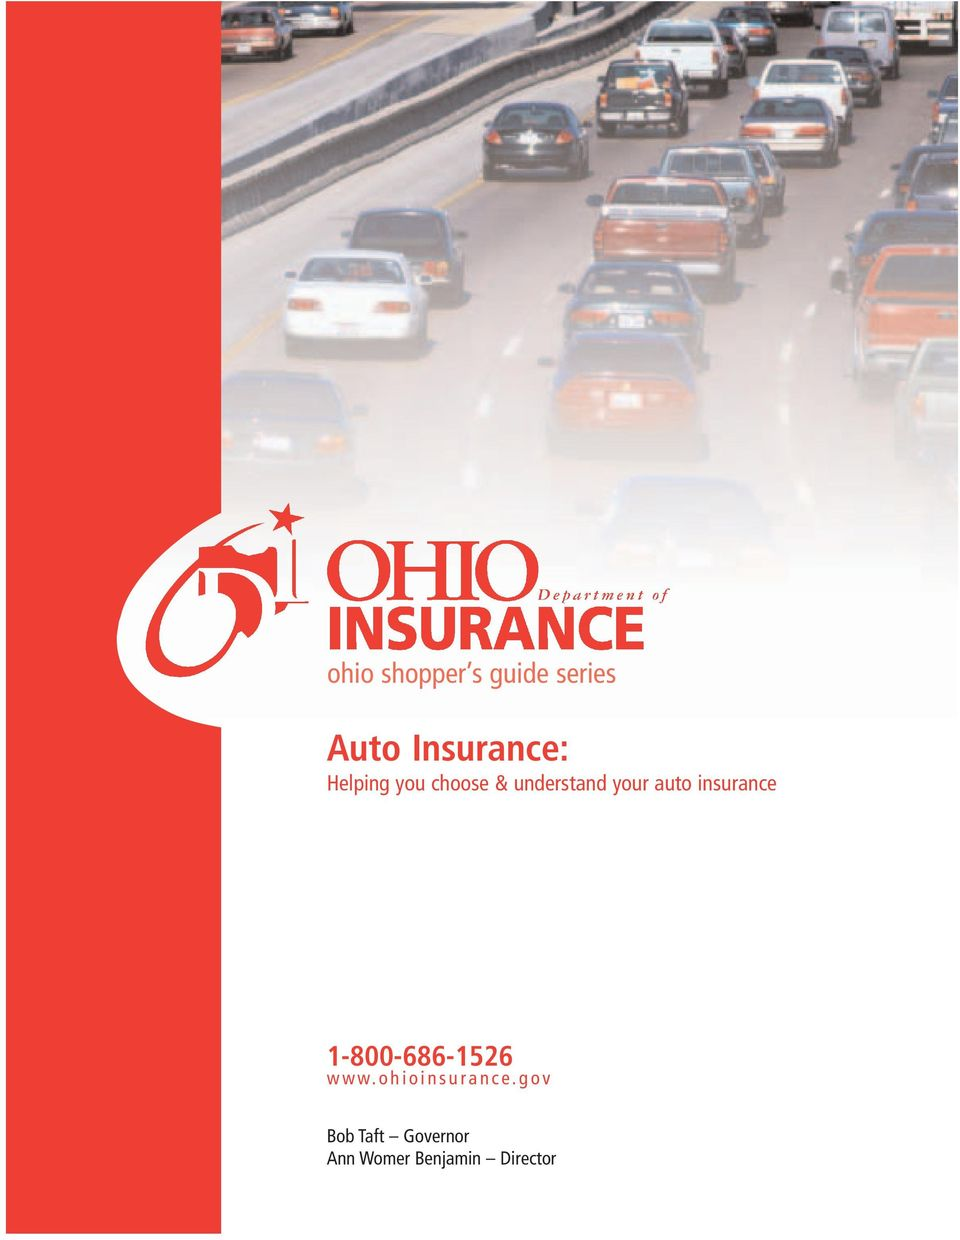 insurance 1-800-686-1526 www.ohioinsurance.